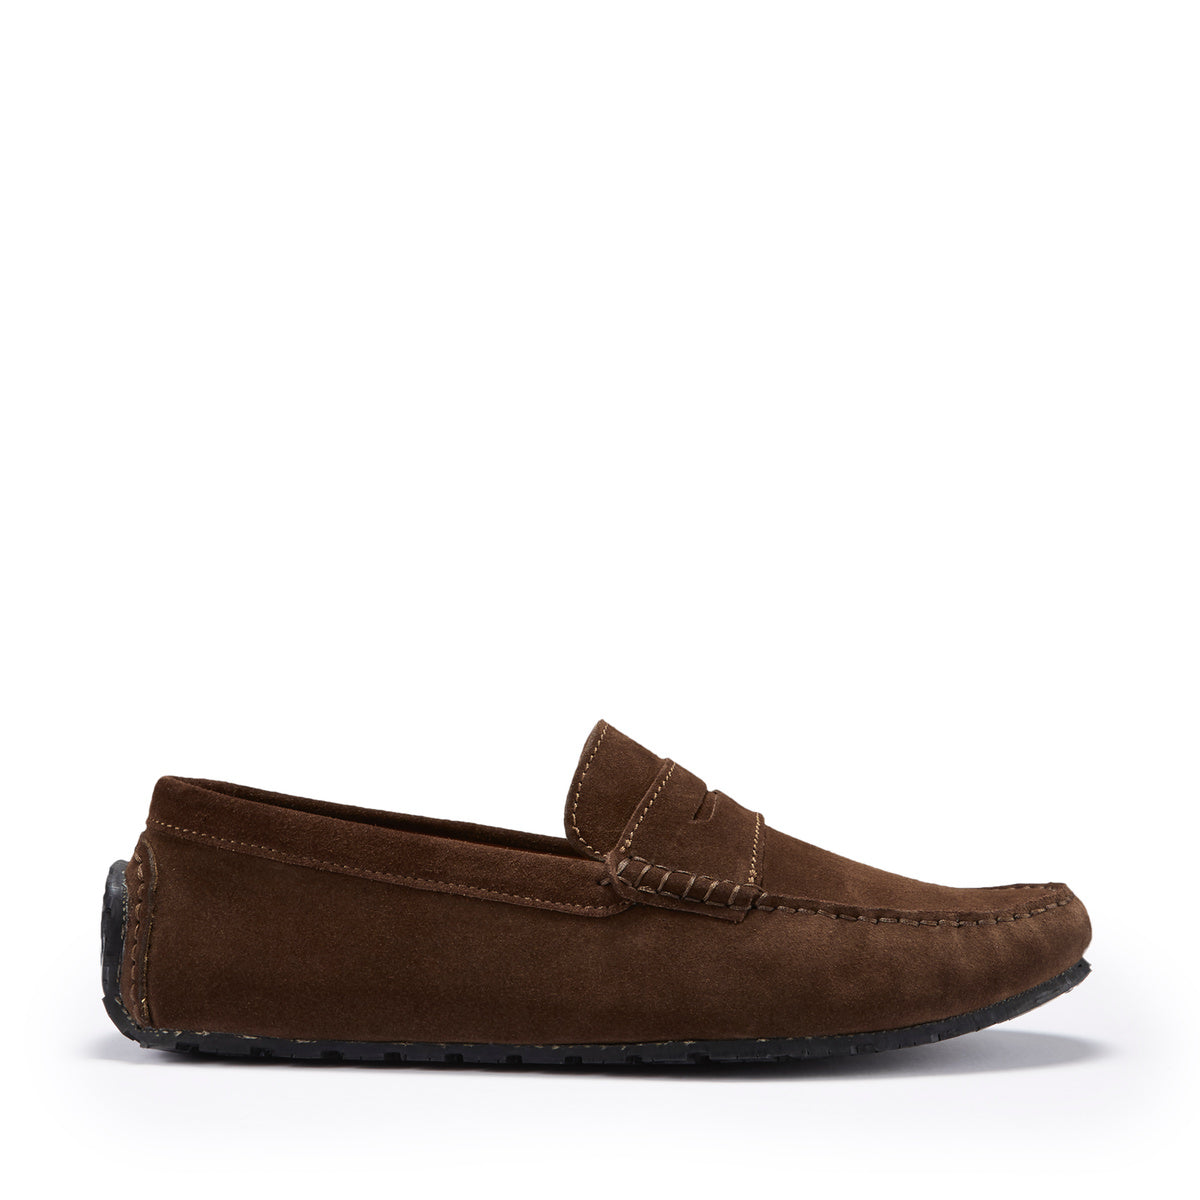 Tyre Sole Penny Driving Loafers, brown suede